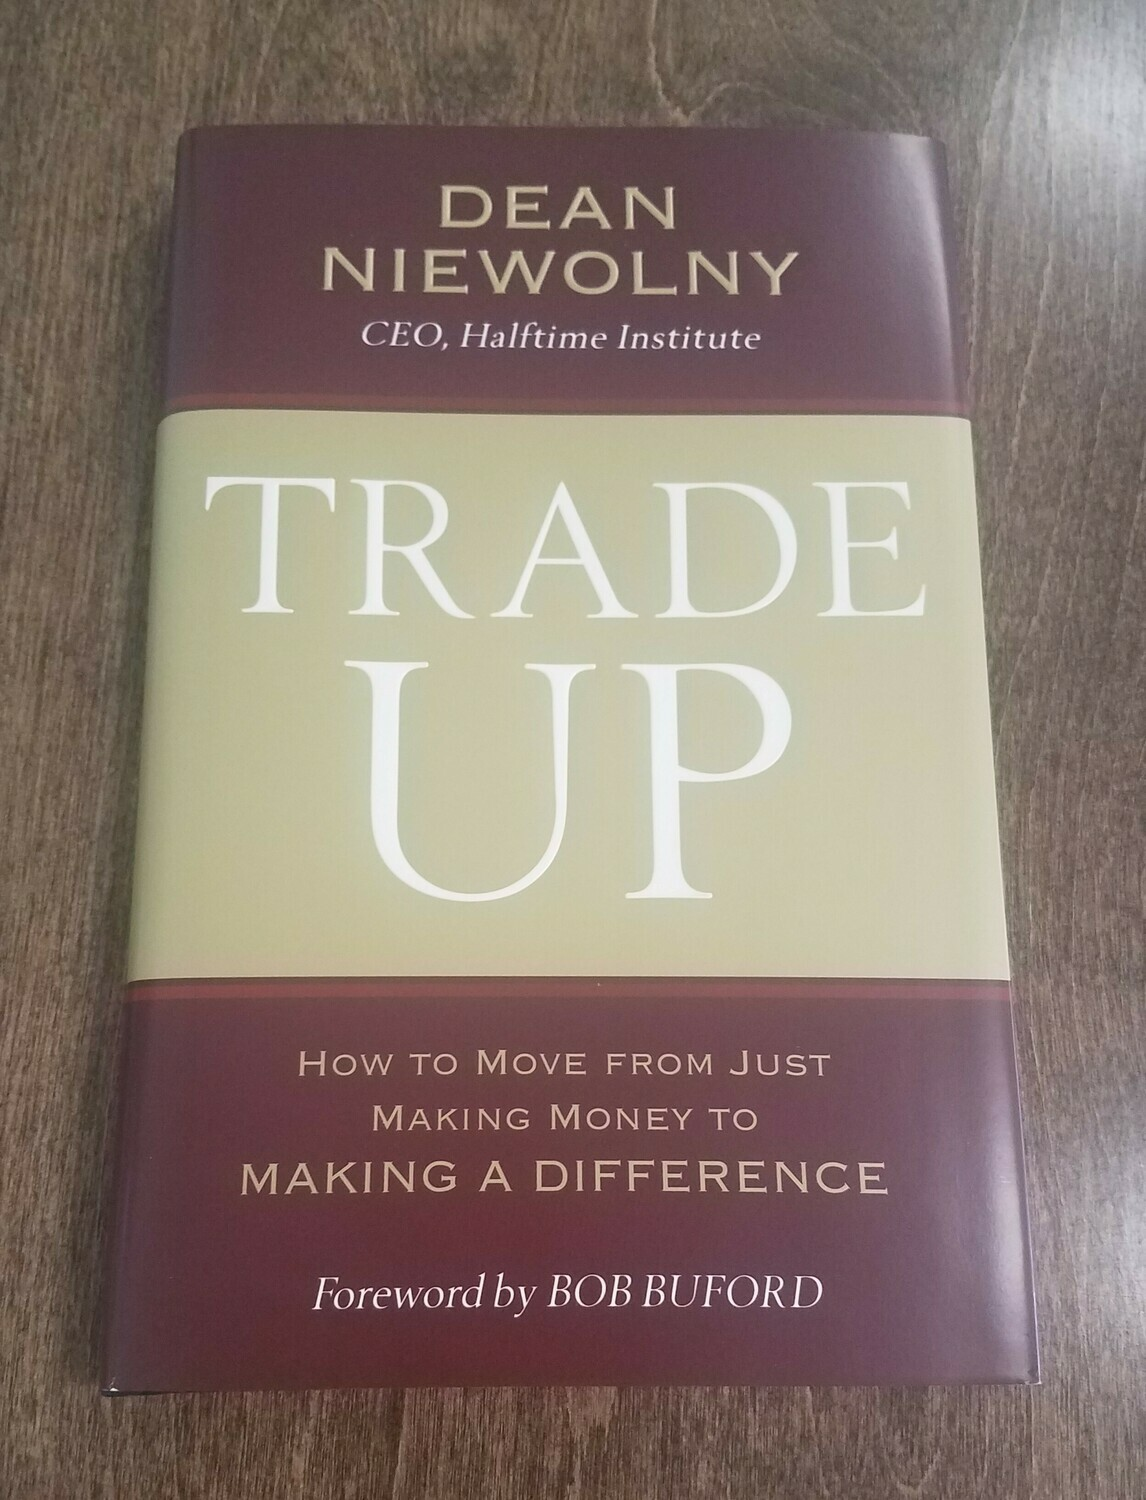 Trade Up: How to Move from Just Making Money to Making a Difference by Dean Niewolny and Bob Buford